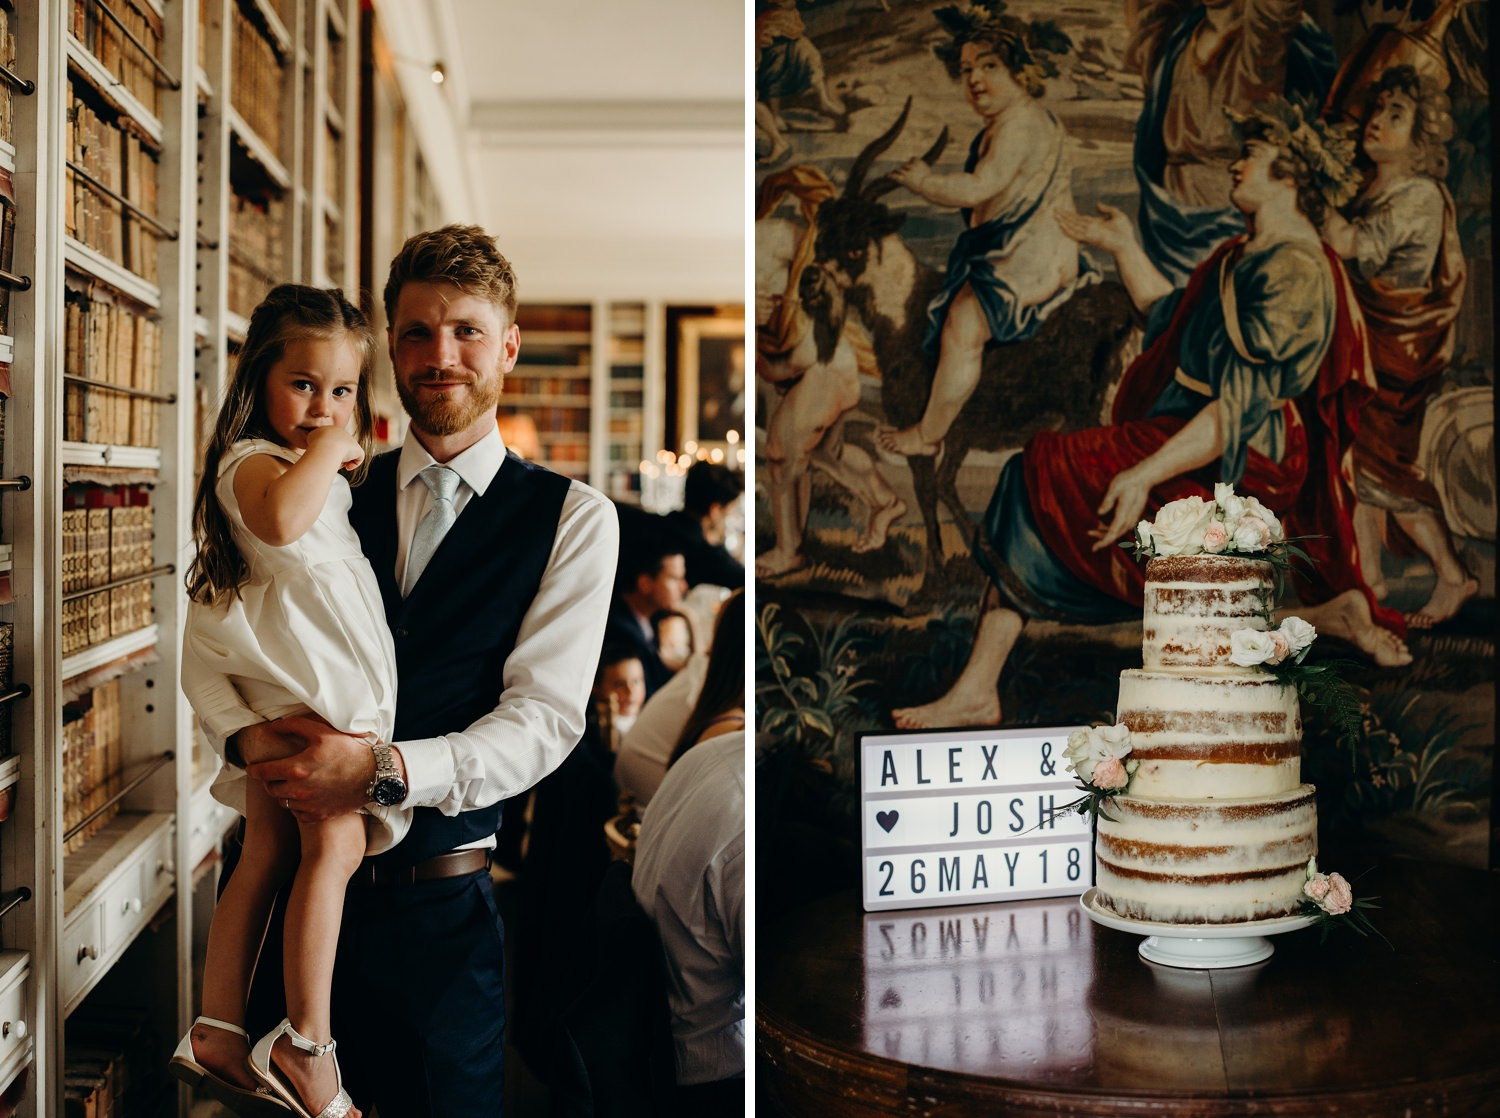 wedding cake with painting in background